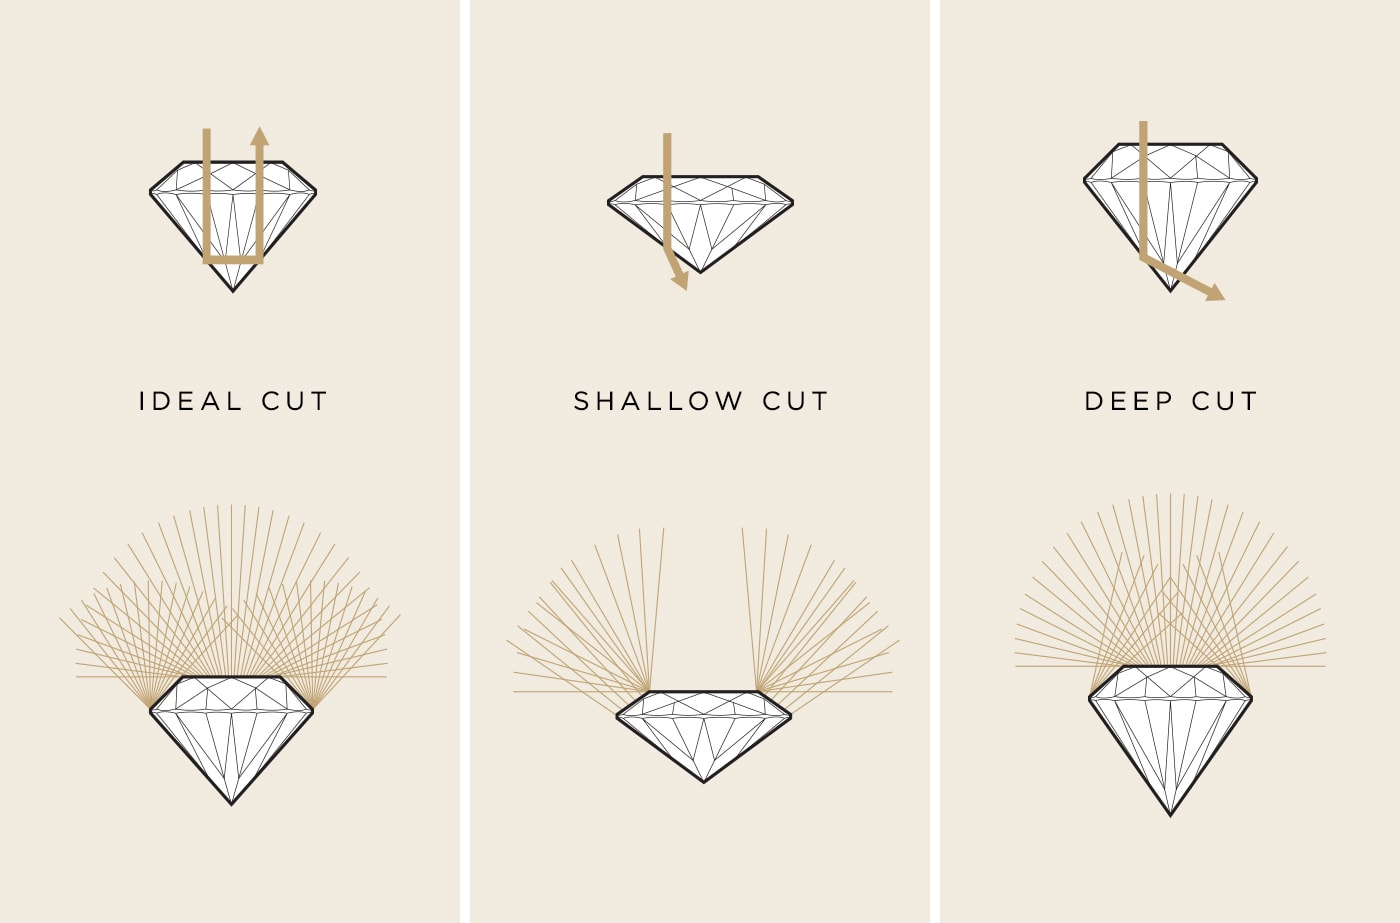 A graphic showing the depths of a diamond's cut.